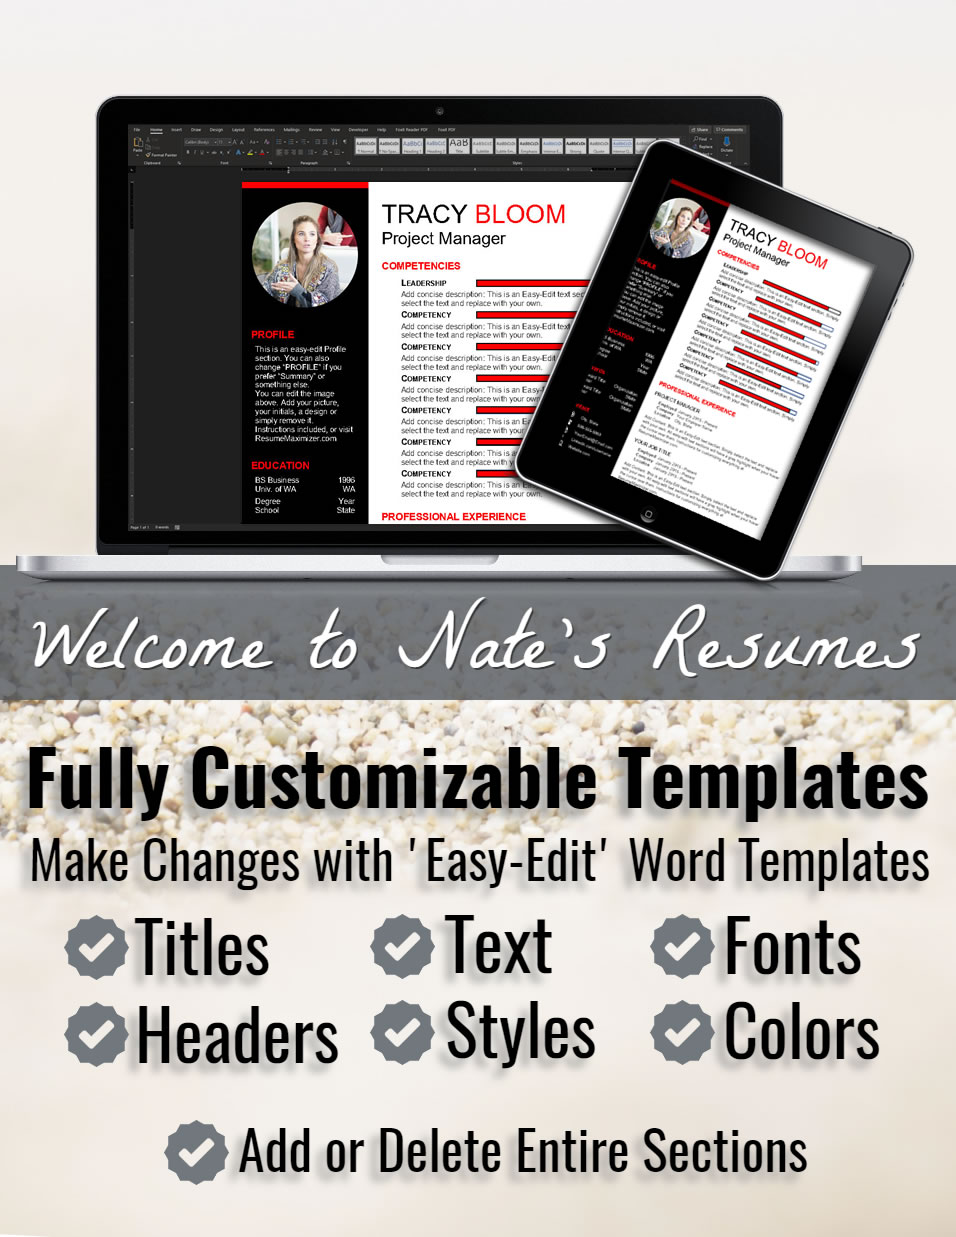 Dynamite - Make-Easy-Edits-to-Templates-LONG